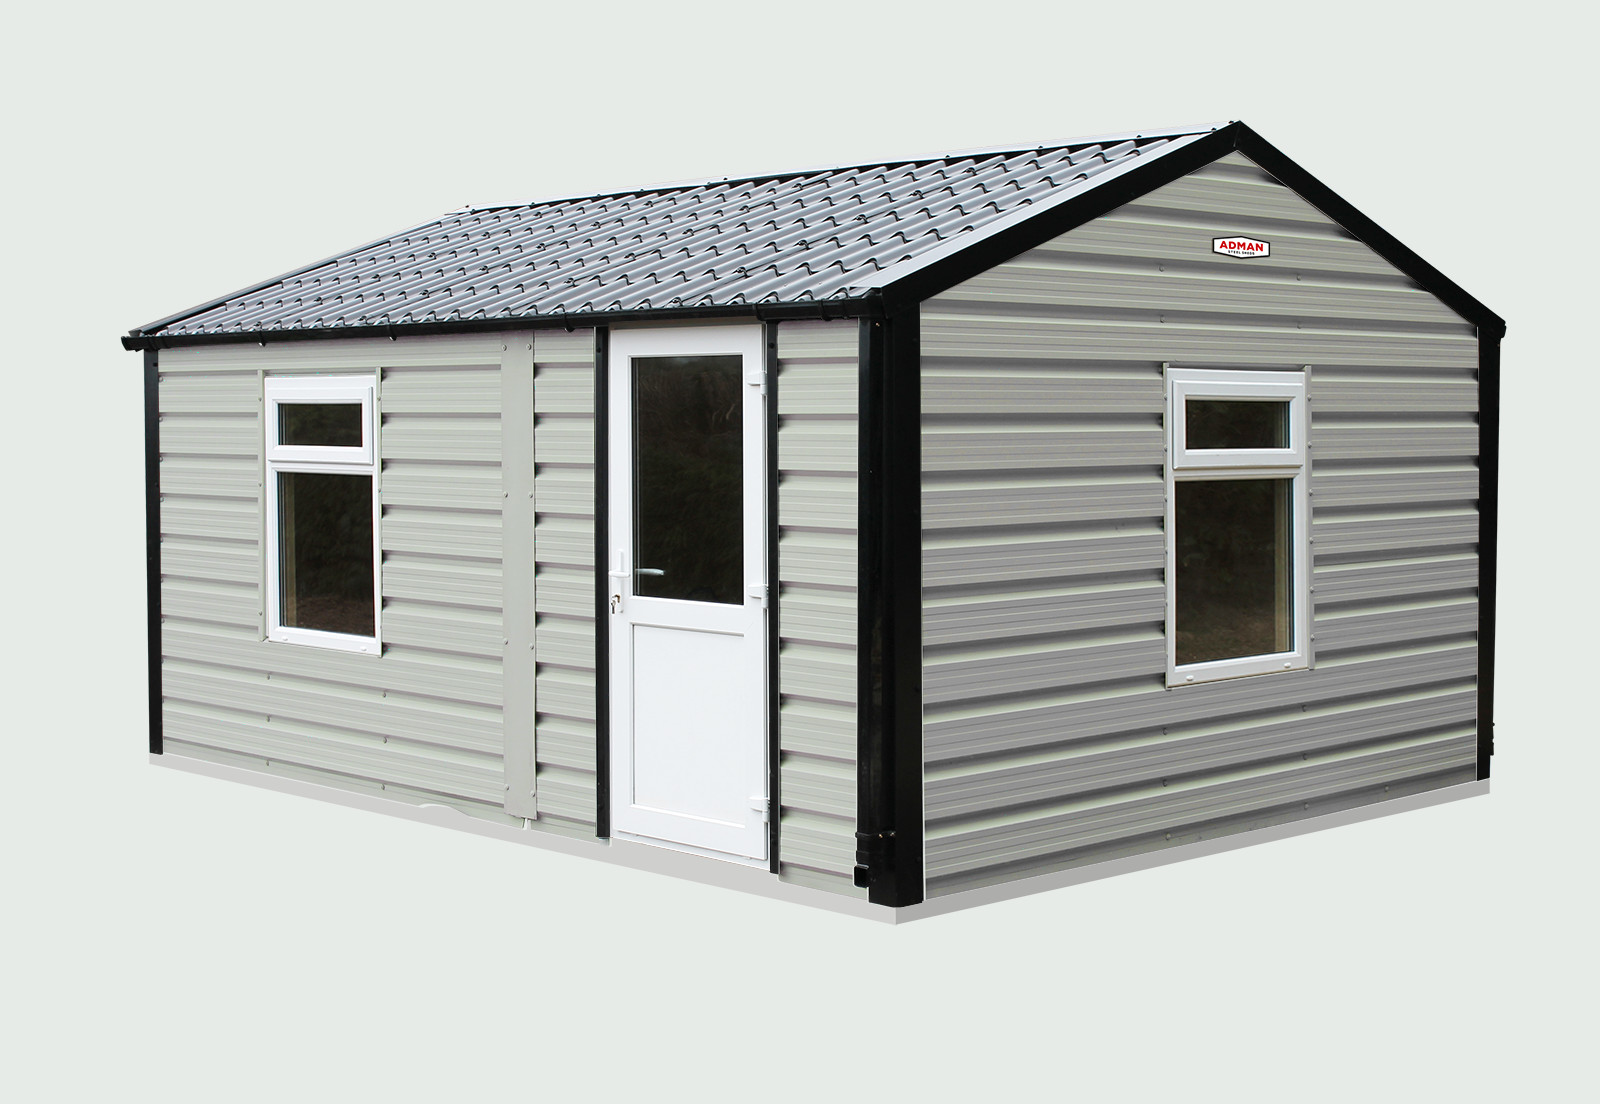 wood here aggregates designs metal available offer colours quality we selection a in power edit of range garden various at sheds trihys and wide timber steel